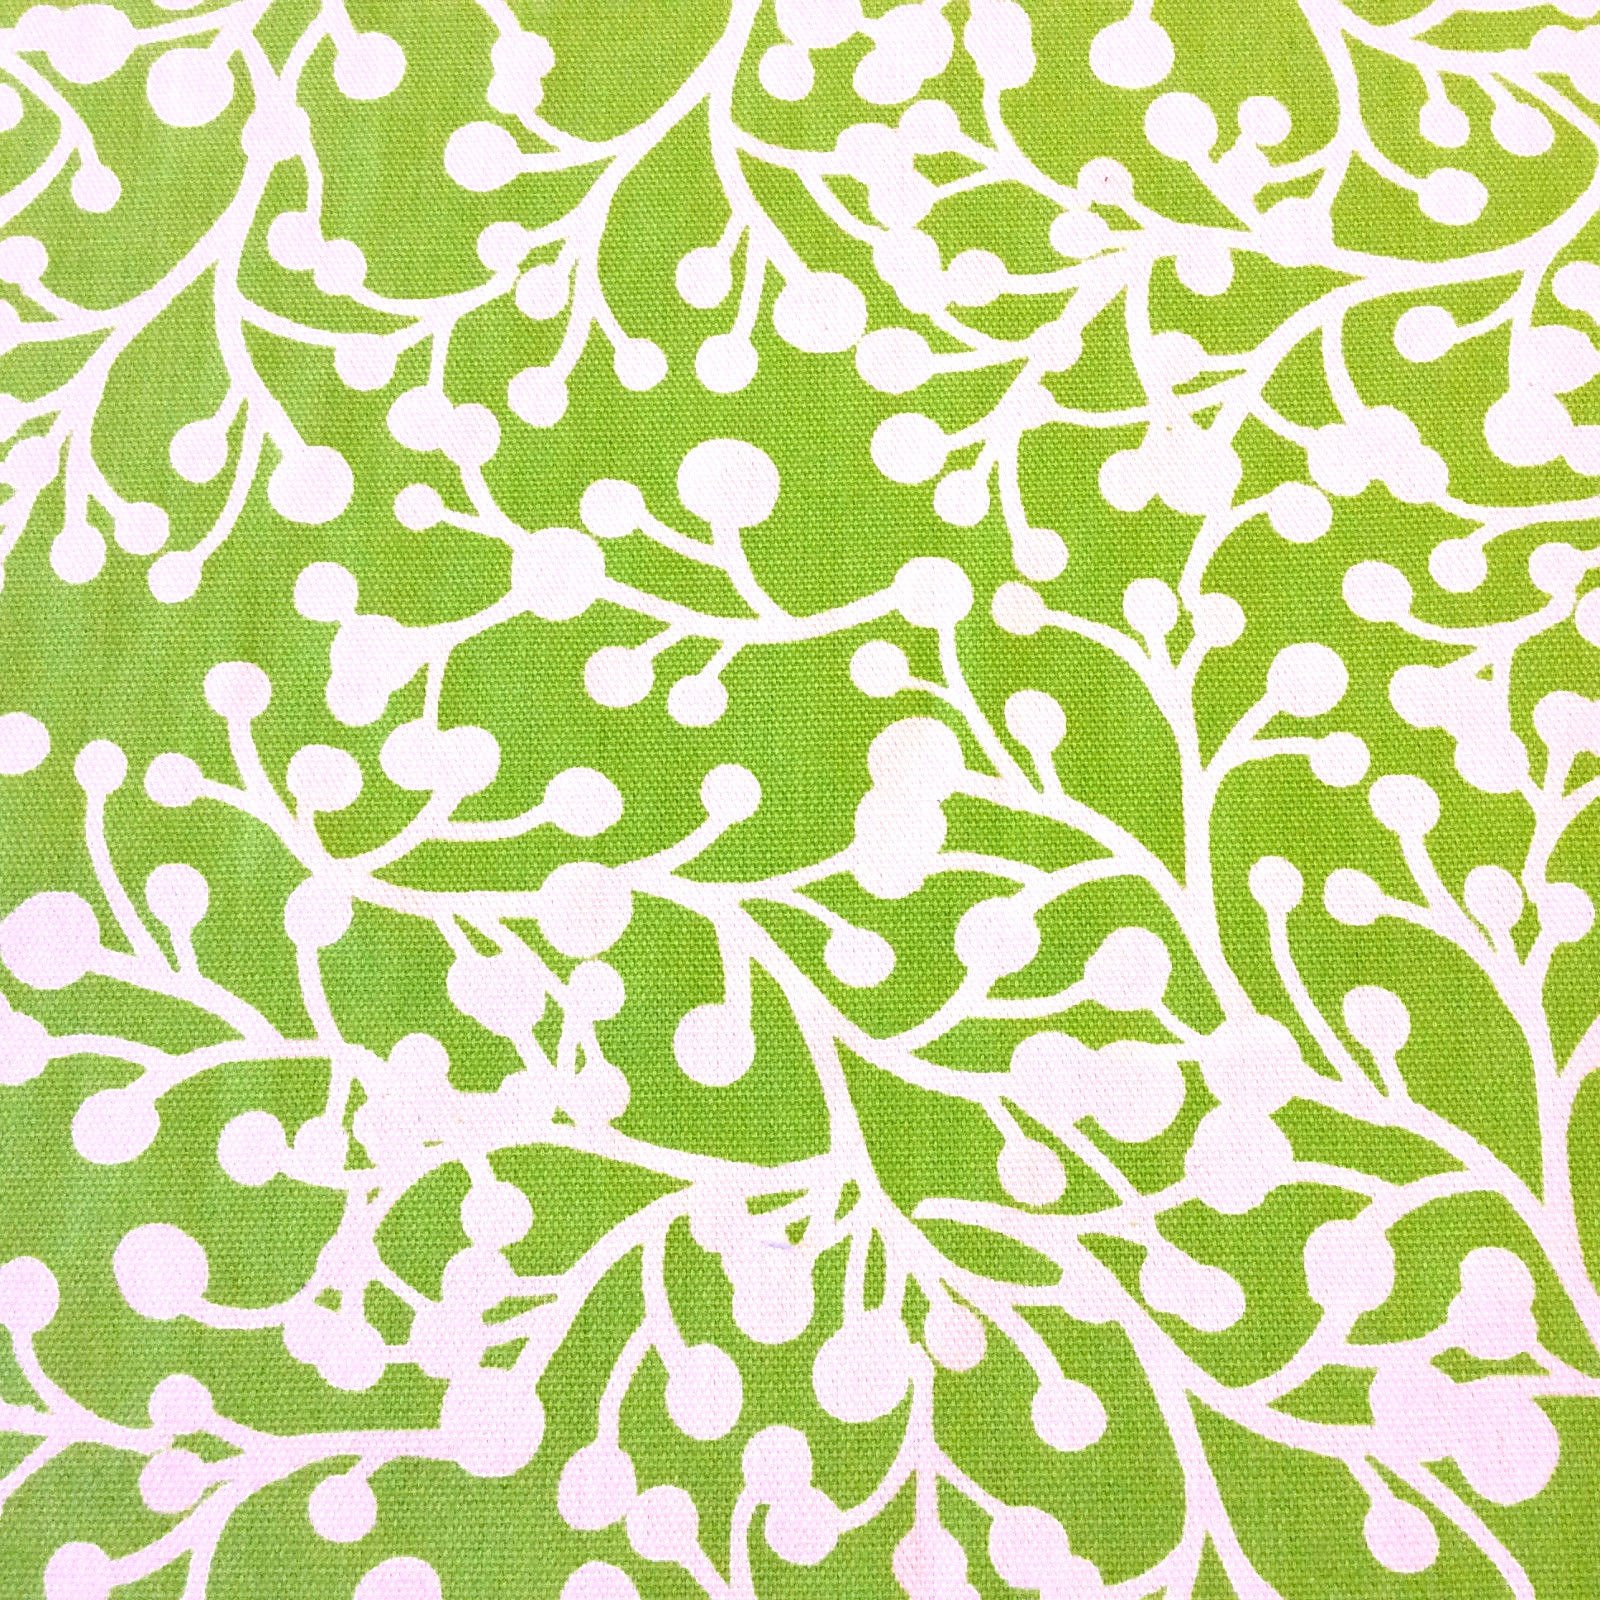 Floral Lime Dot Branches Garden Floral Patio Awning Home Dec Indoor Outdoor Fabric s406